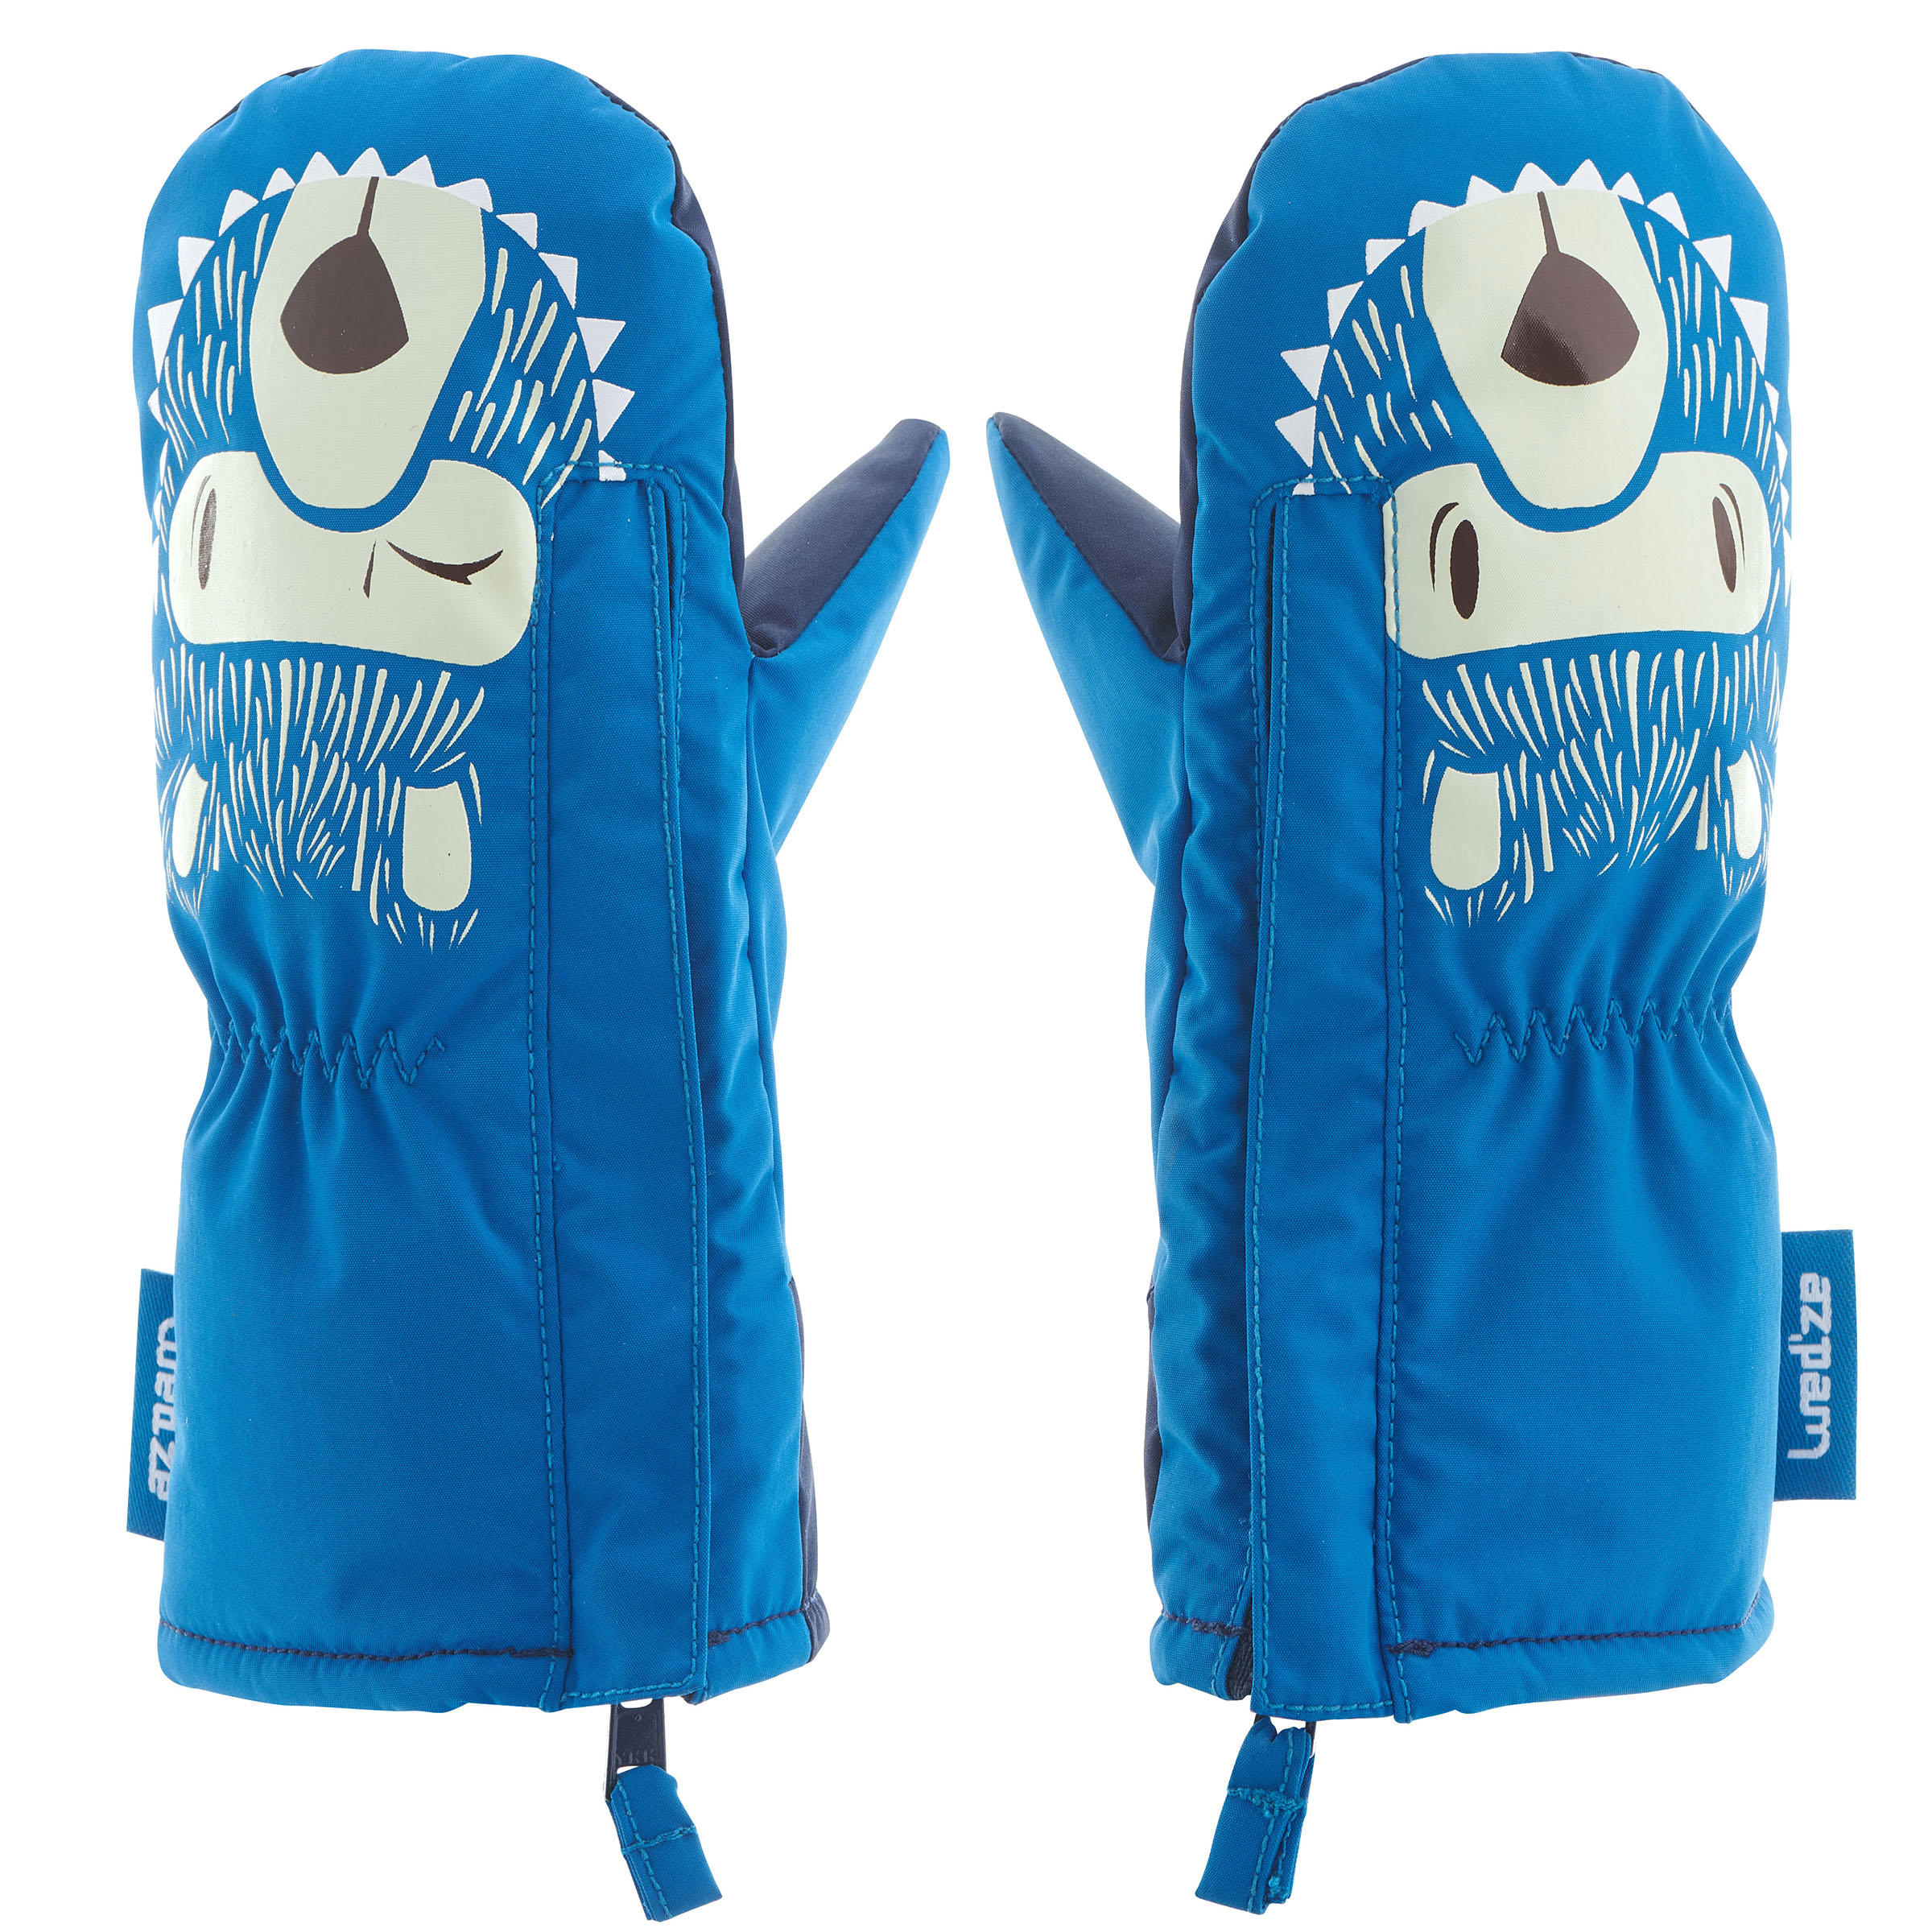 Warm Baby Sledding Mittens - Blue